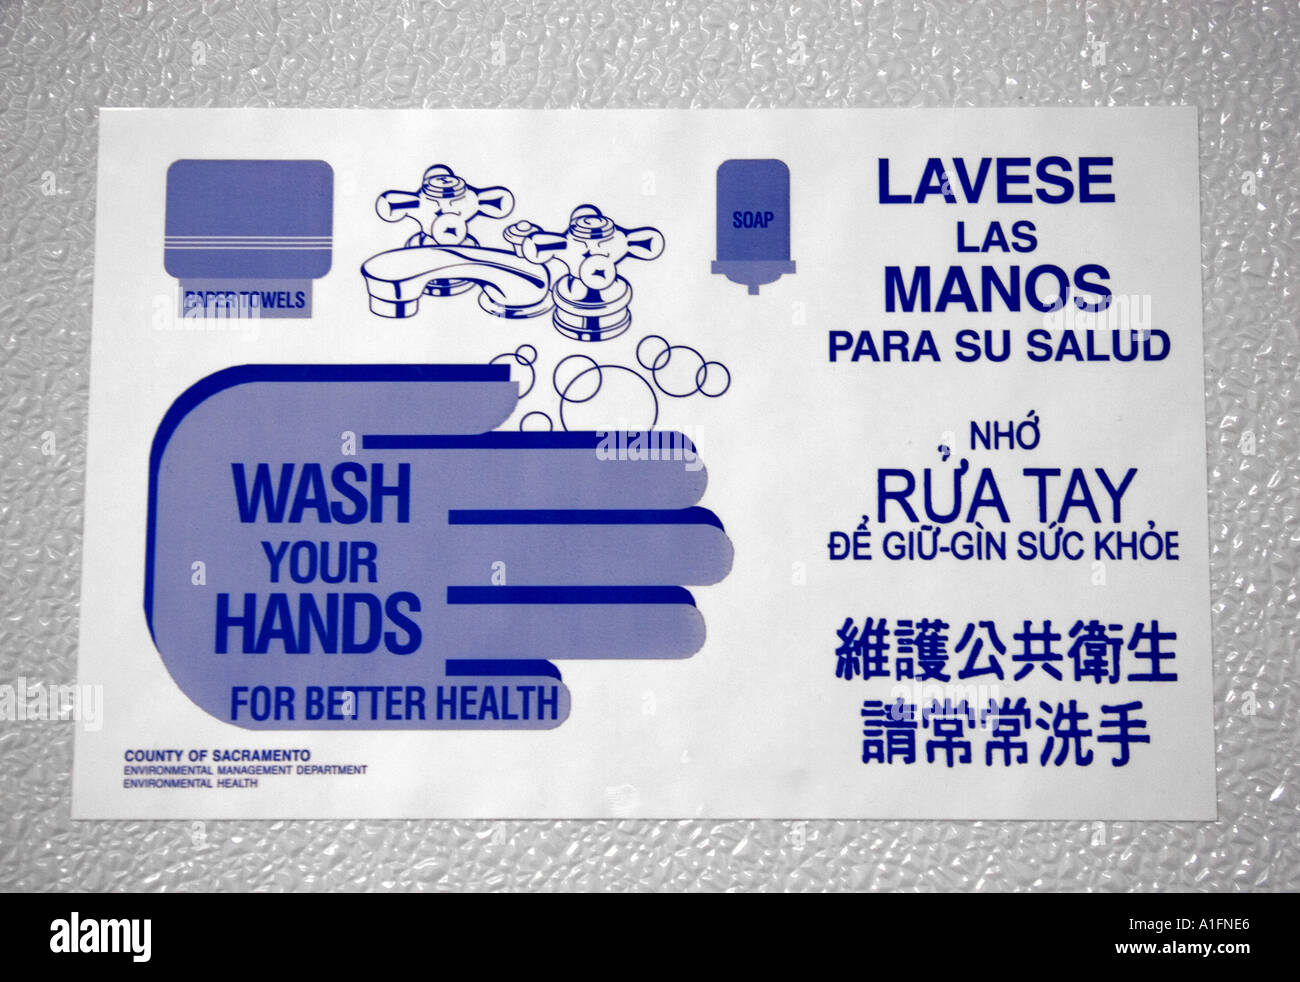 Bathroom Signs English And Spanish wash your hands sign in a bathroom showing different languages